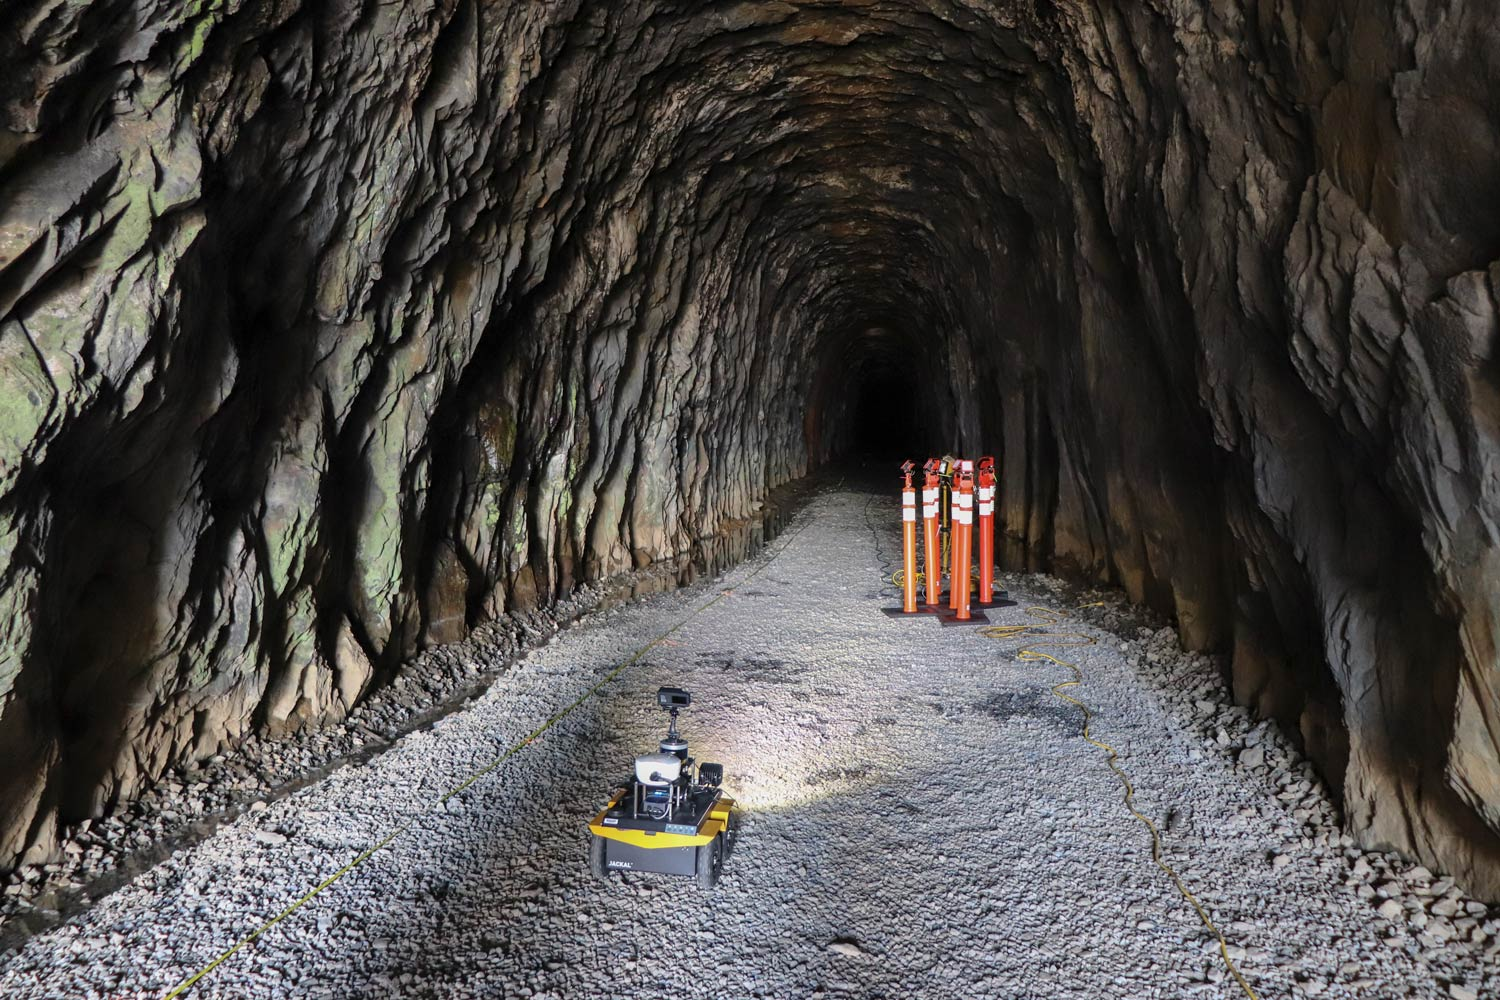 The robot enters the Crozet Tunnel to start its mapping process.